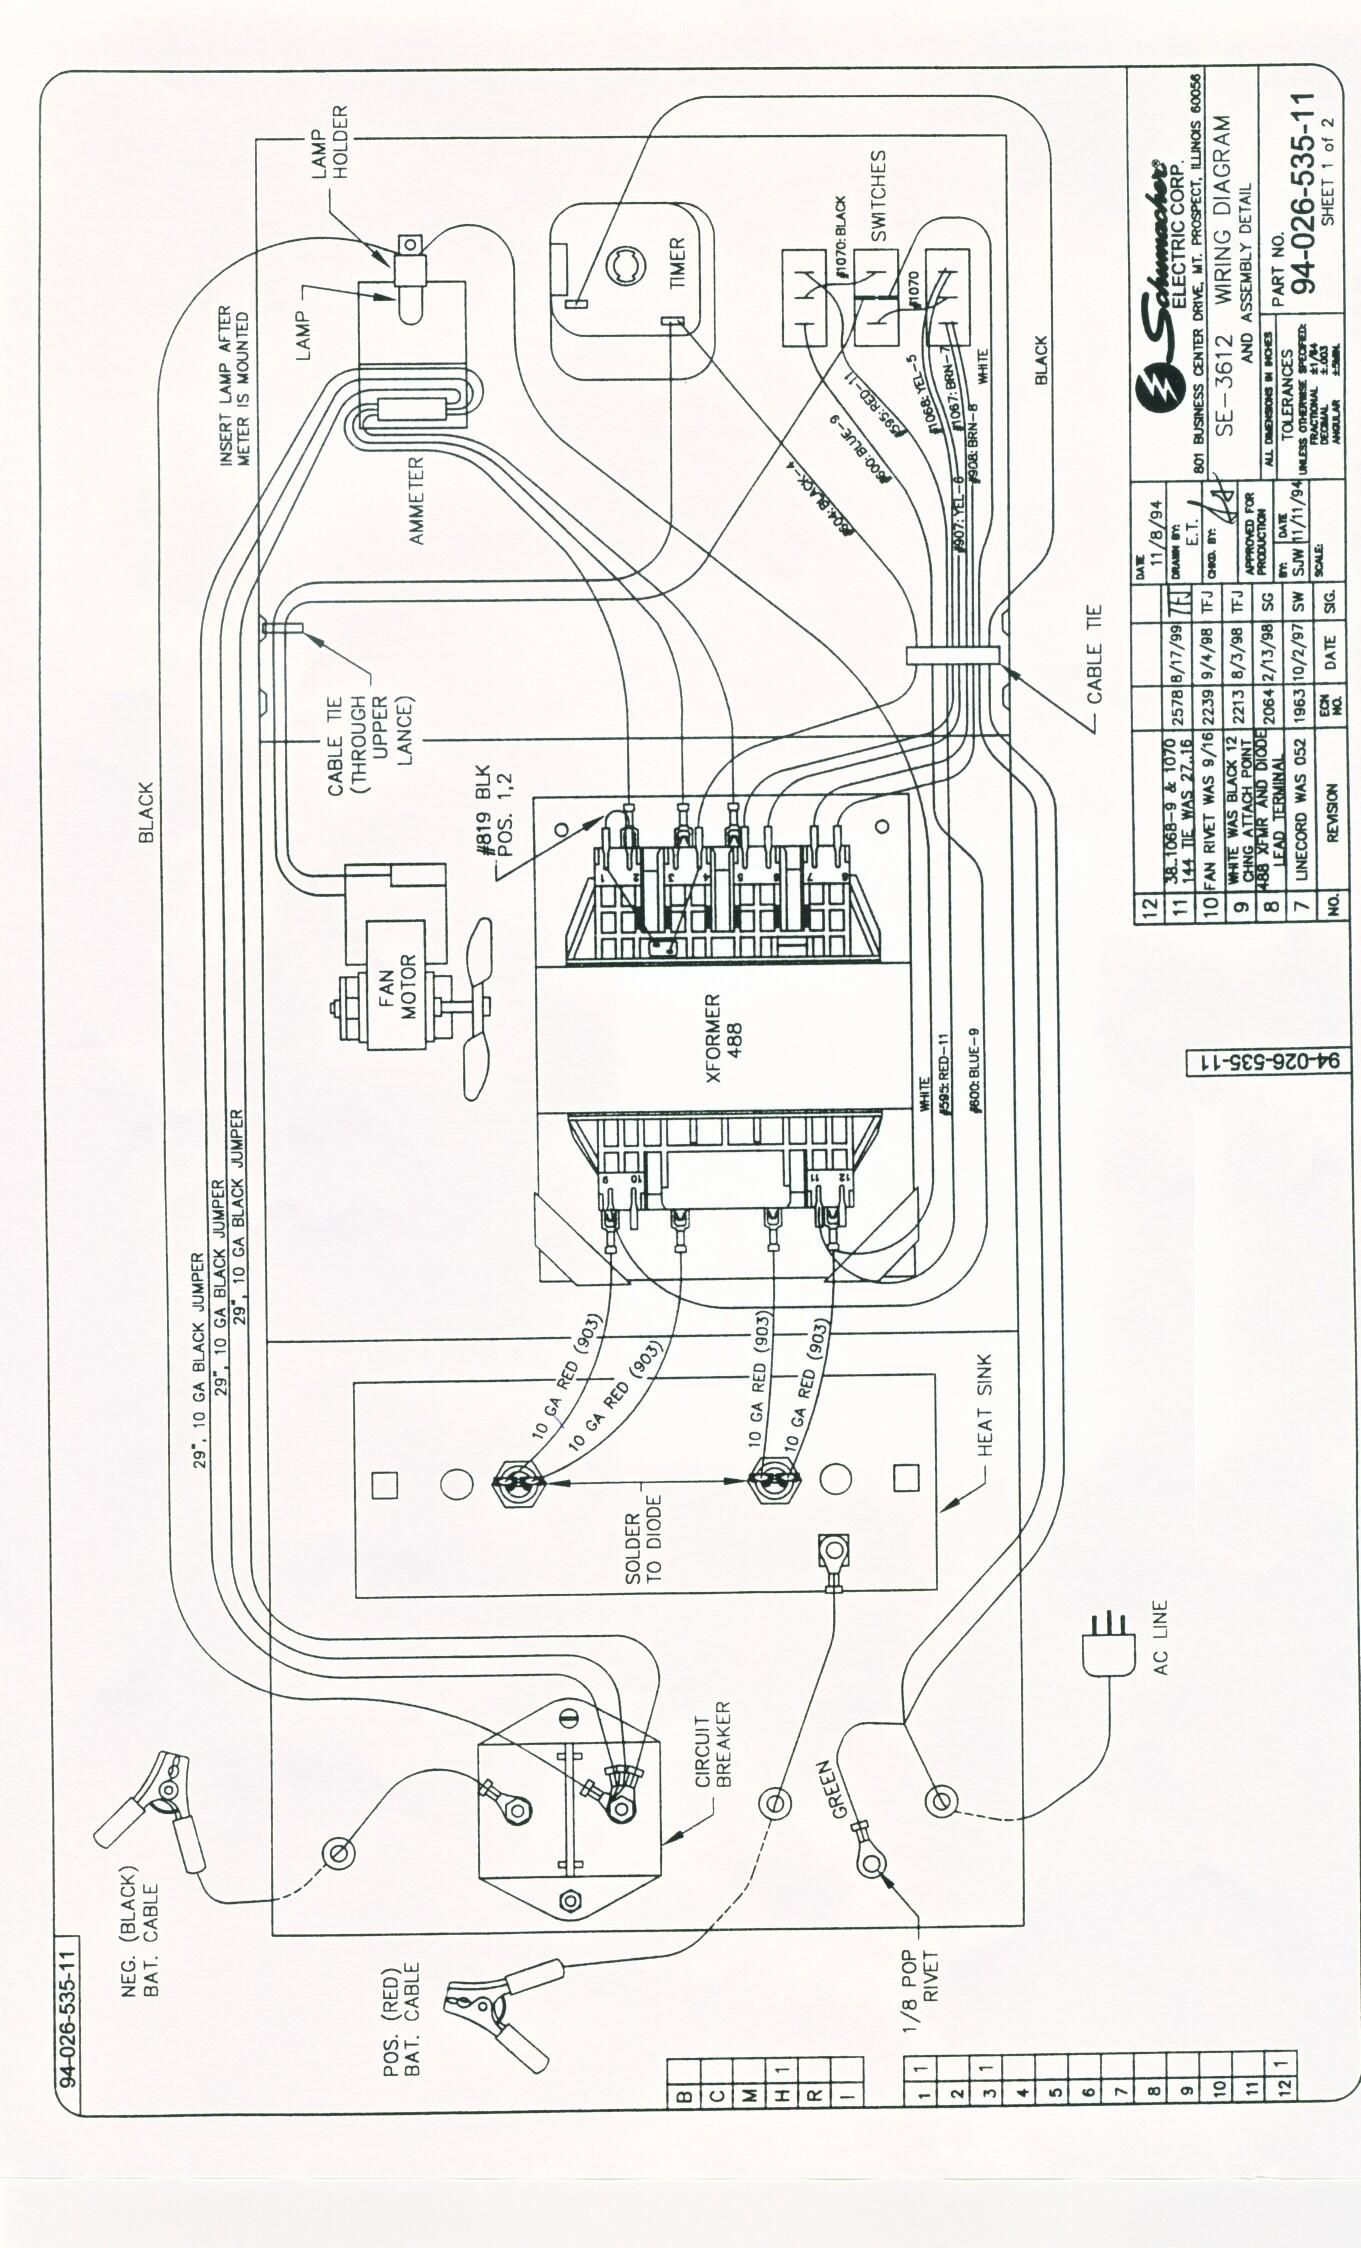 schumacher battery charger wiring diagram [ 1361 x 2248 Pixel ]